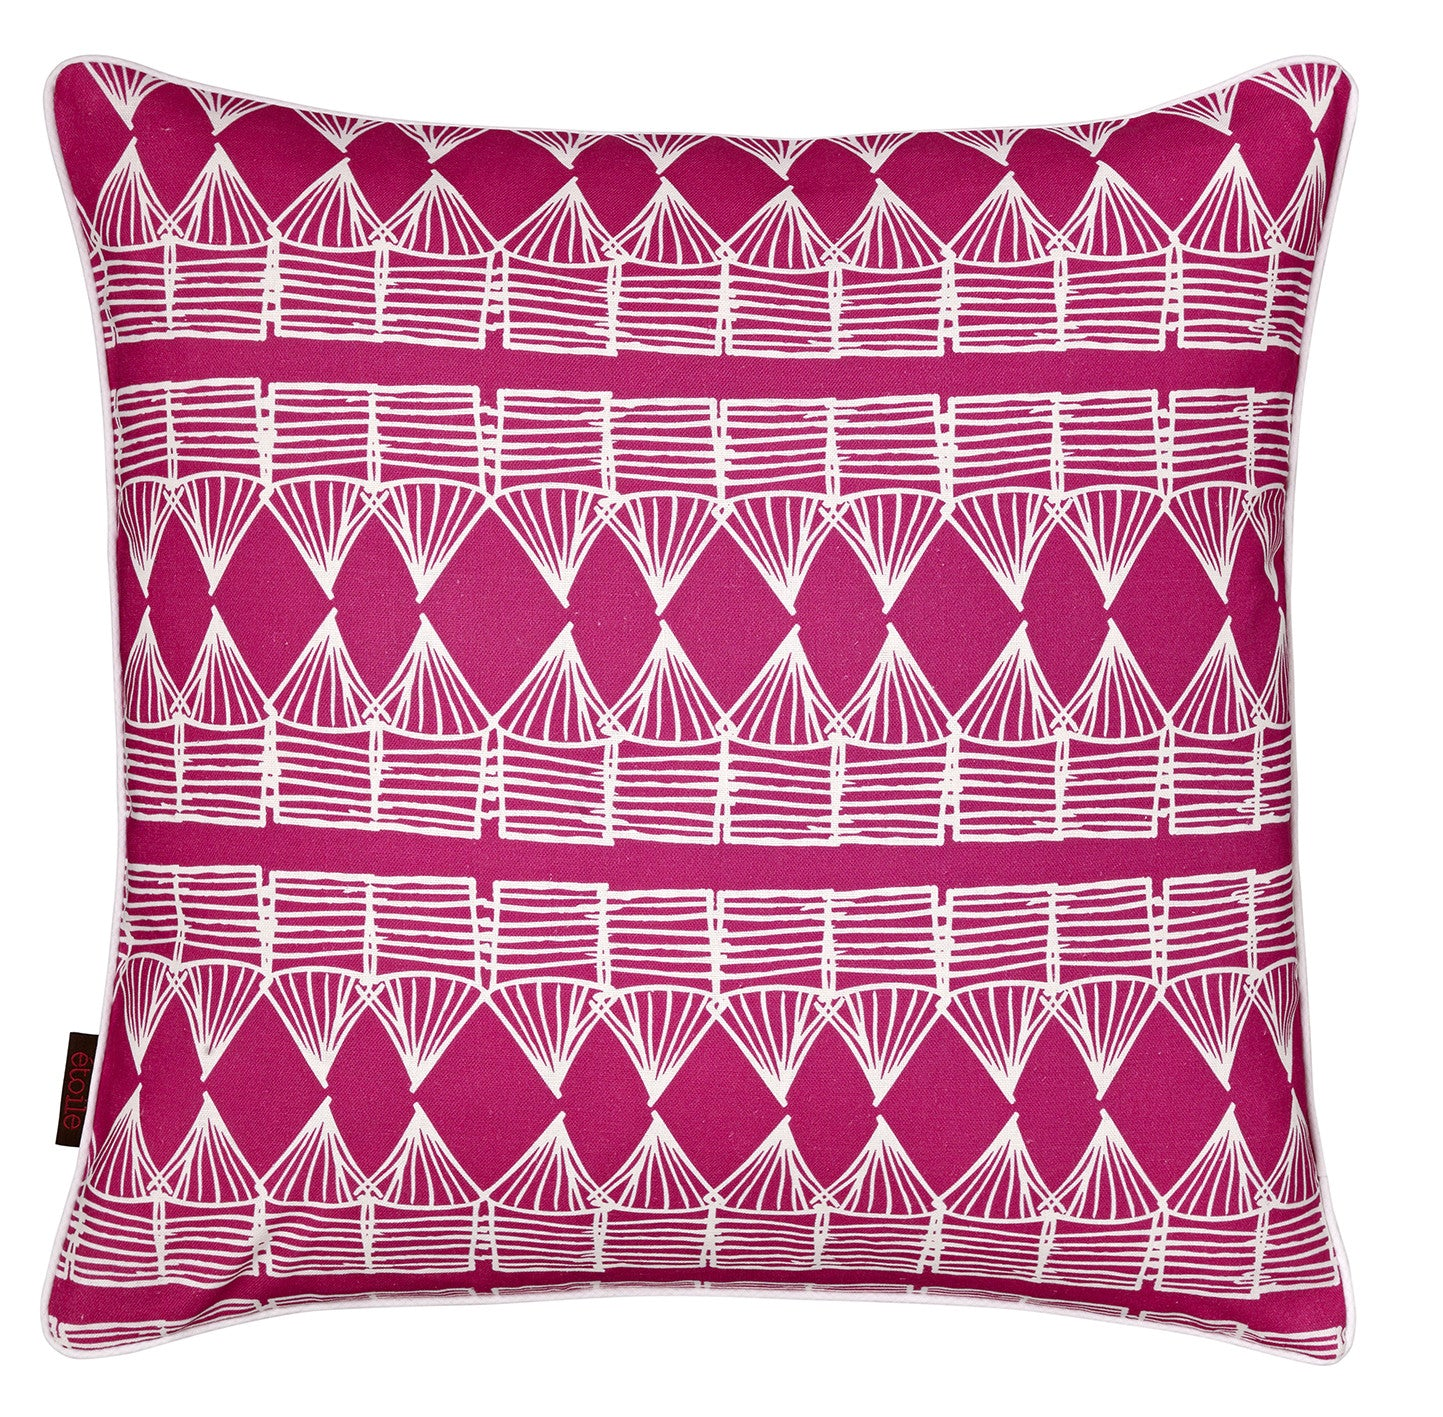 "Tiki Huts Pattern Linen Cotton Throw Pillow in Hot Fuchsia Pink 45x45cm 18x18"" Ships from Canada worldwide including the USA"